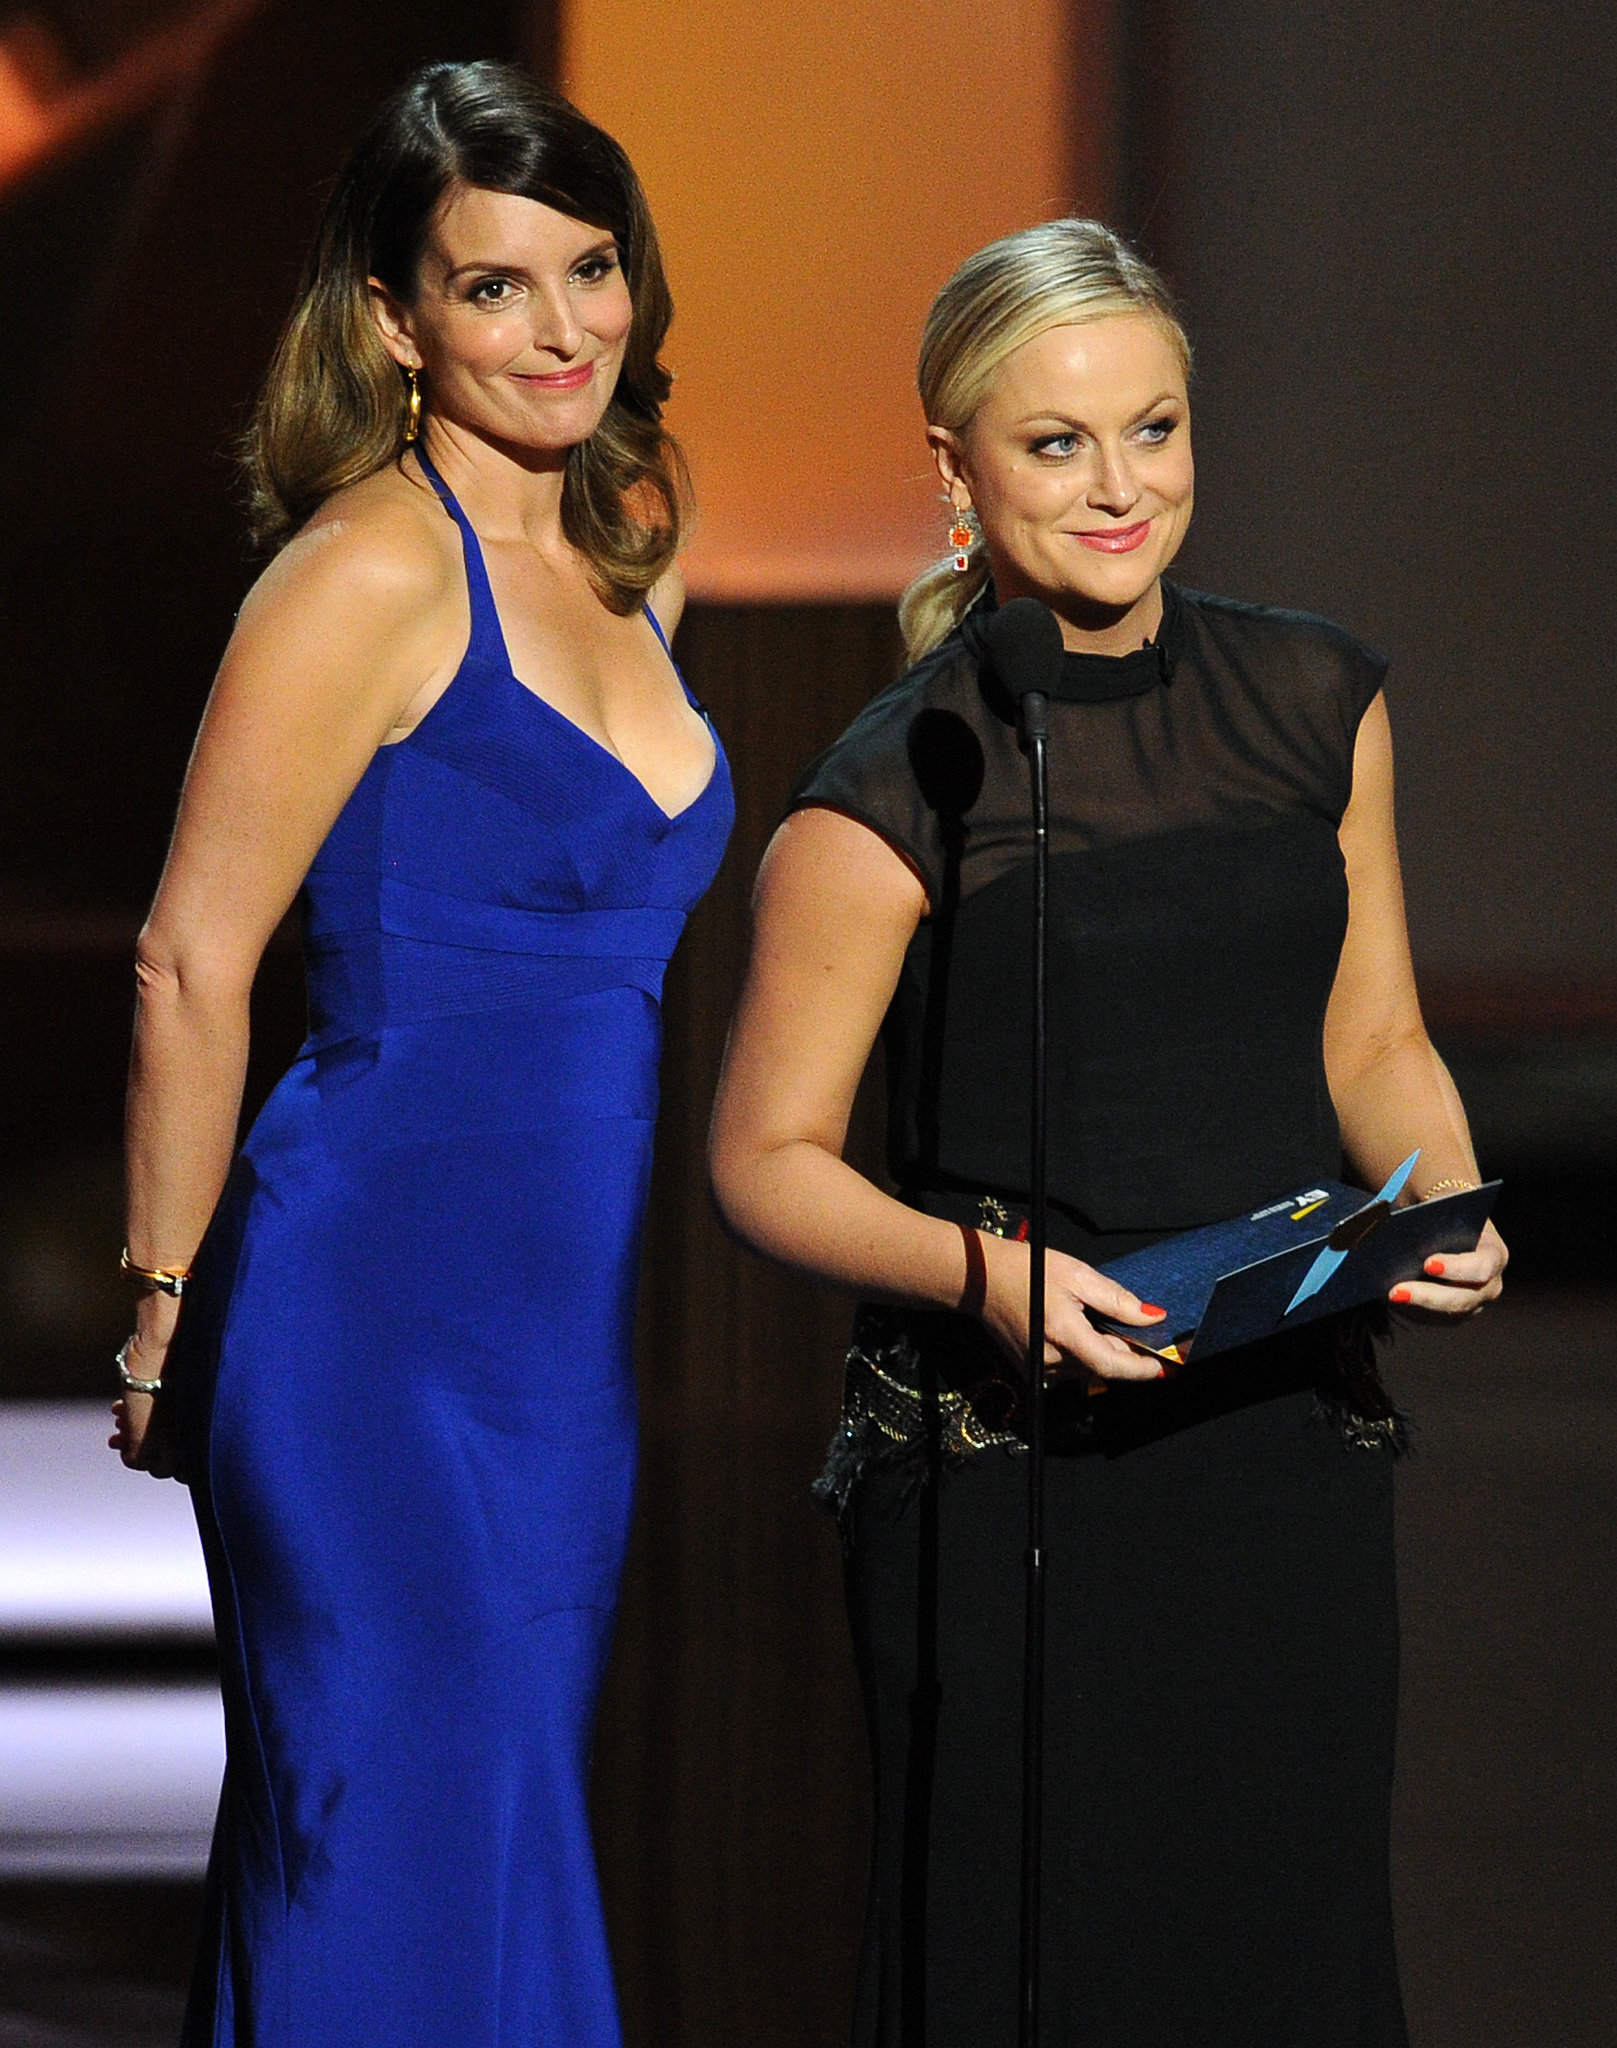 Tina Fey and Amy Poehler had the crowd cracking up at the start of the sh